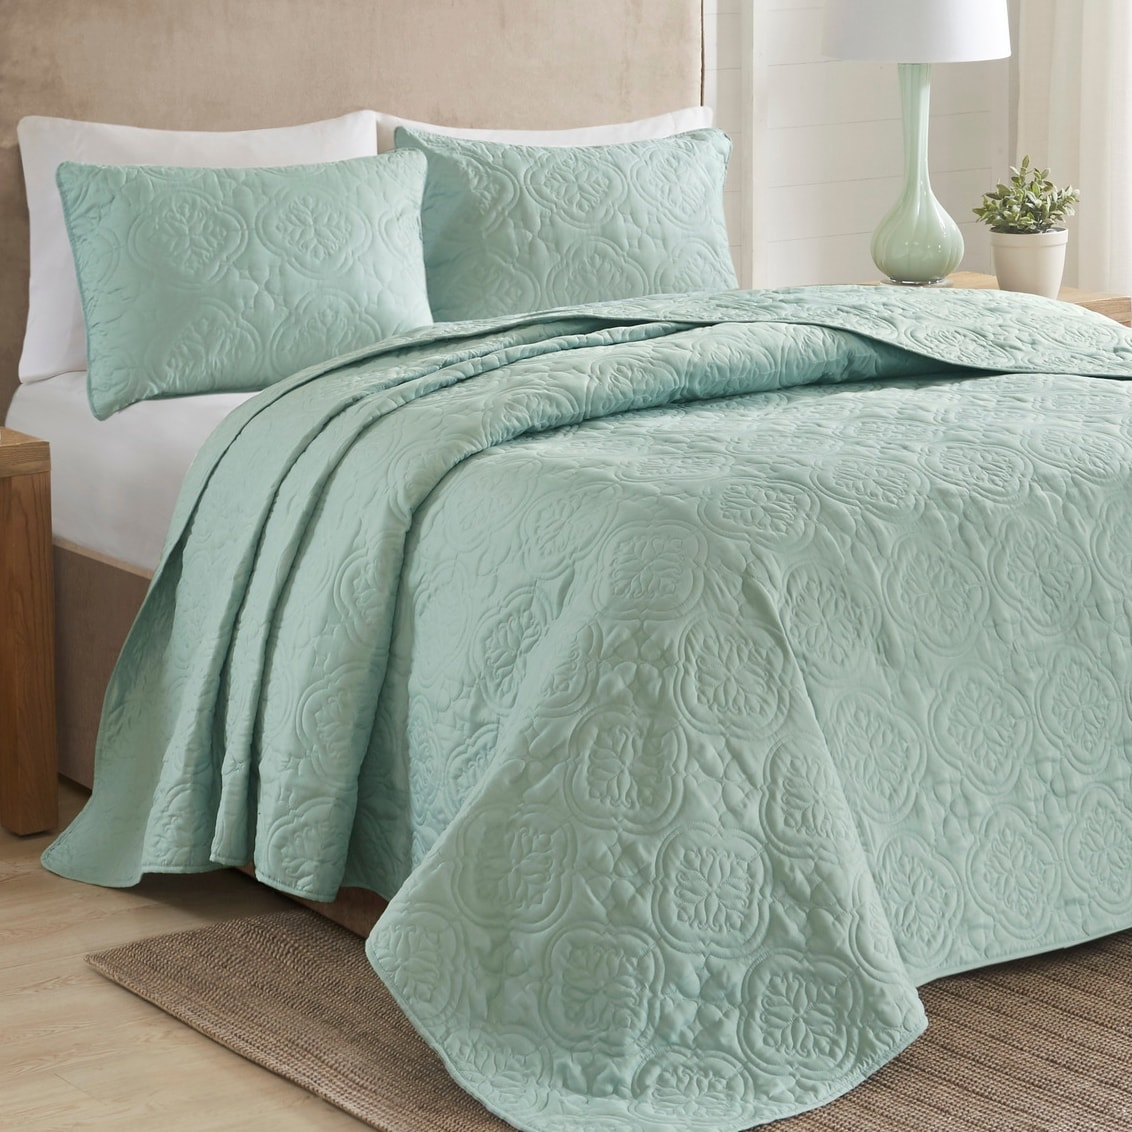 bedspreads find great bedding